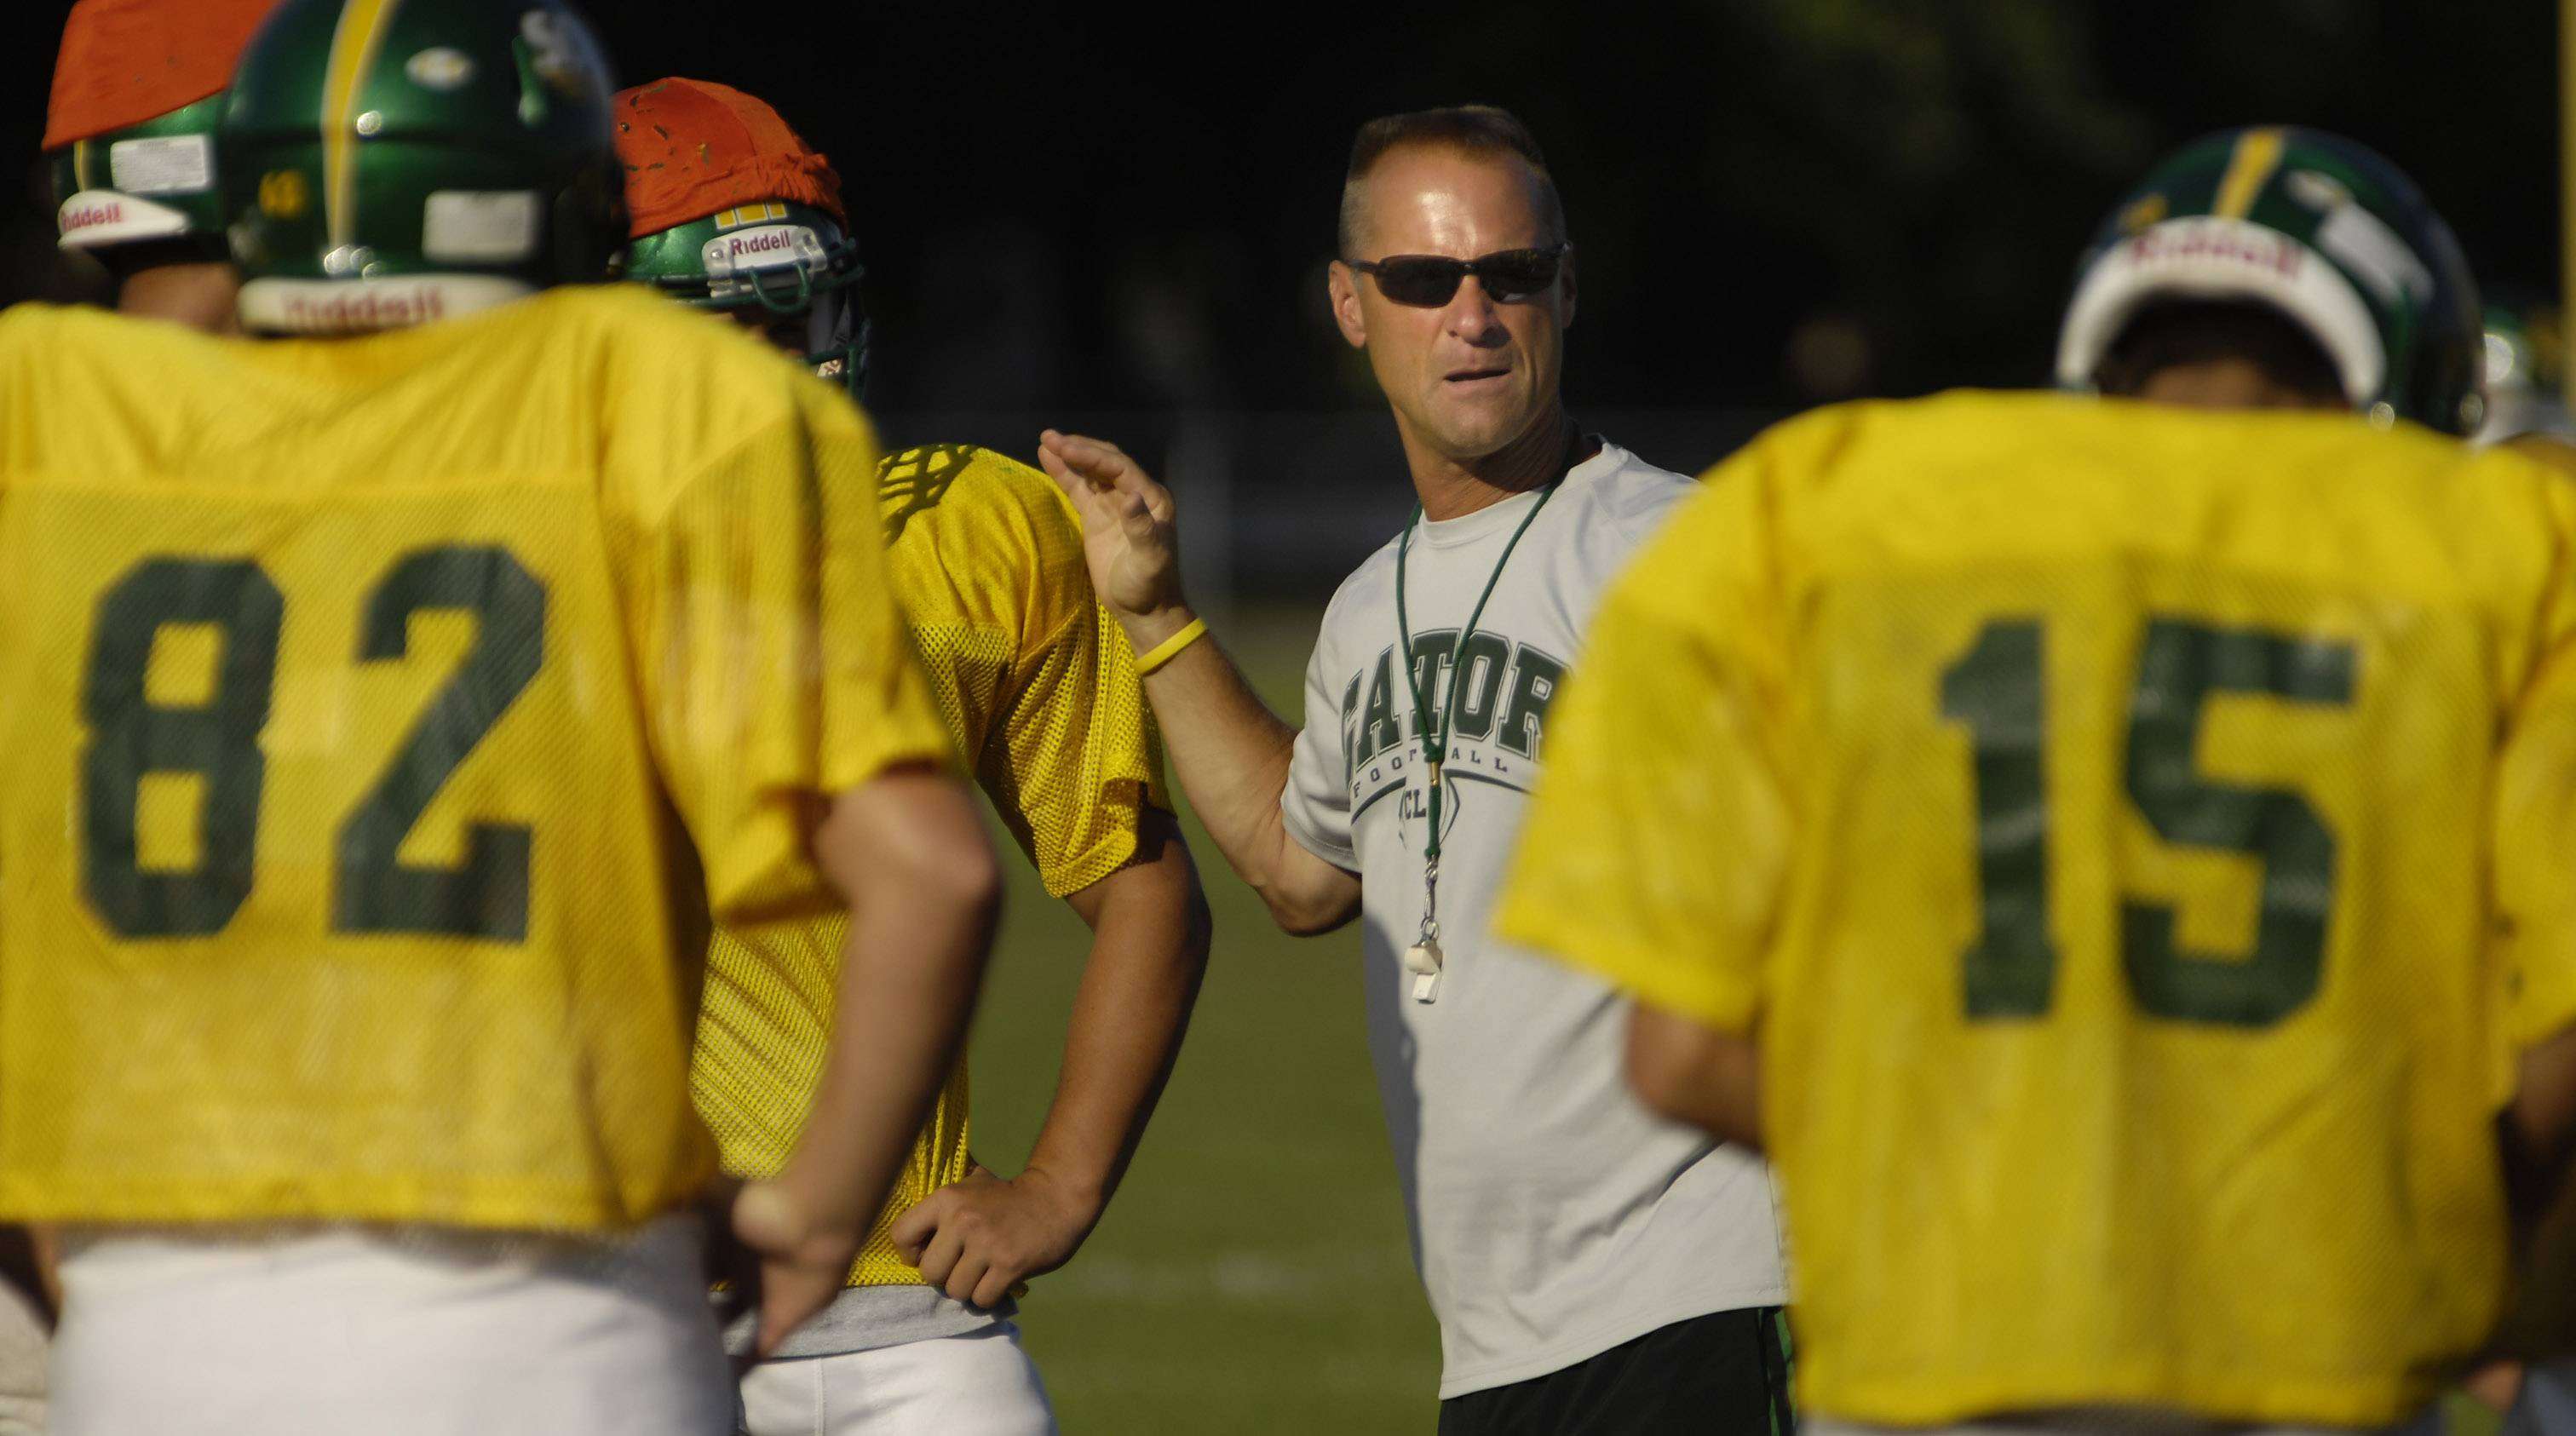 Crystal Lake South football coach Chuck Ahsmann has announced he'll step down following this Friday's season finale against West Chicago to cap a seven-year run as the program's head coach.